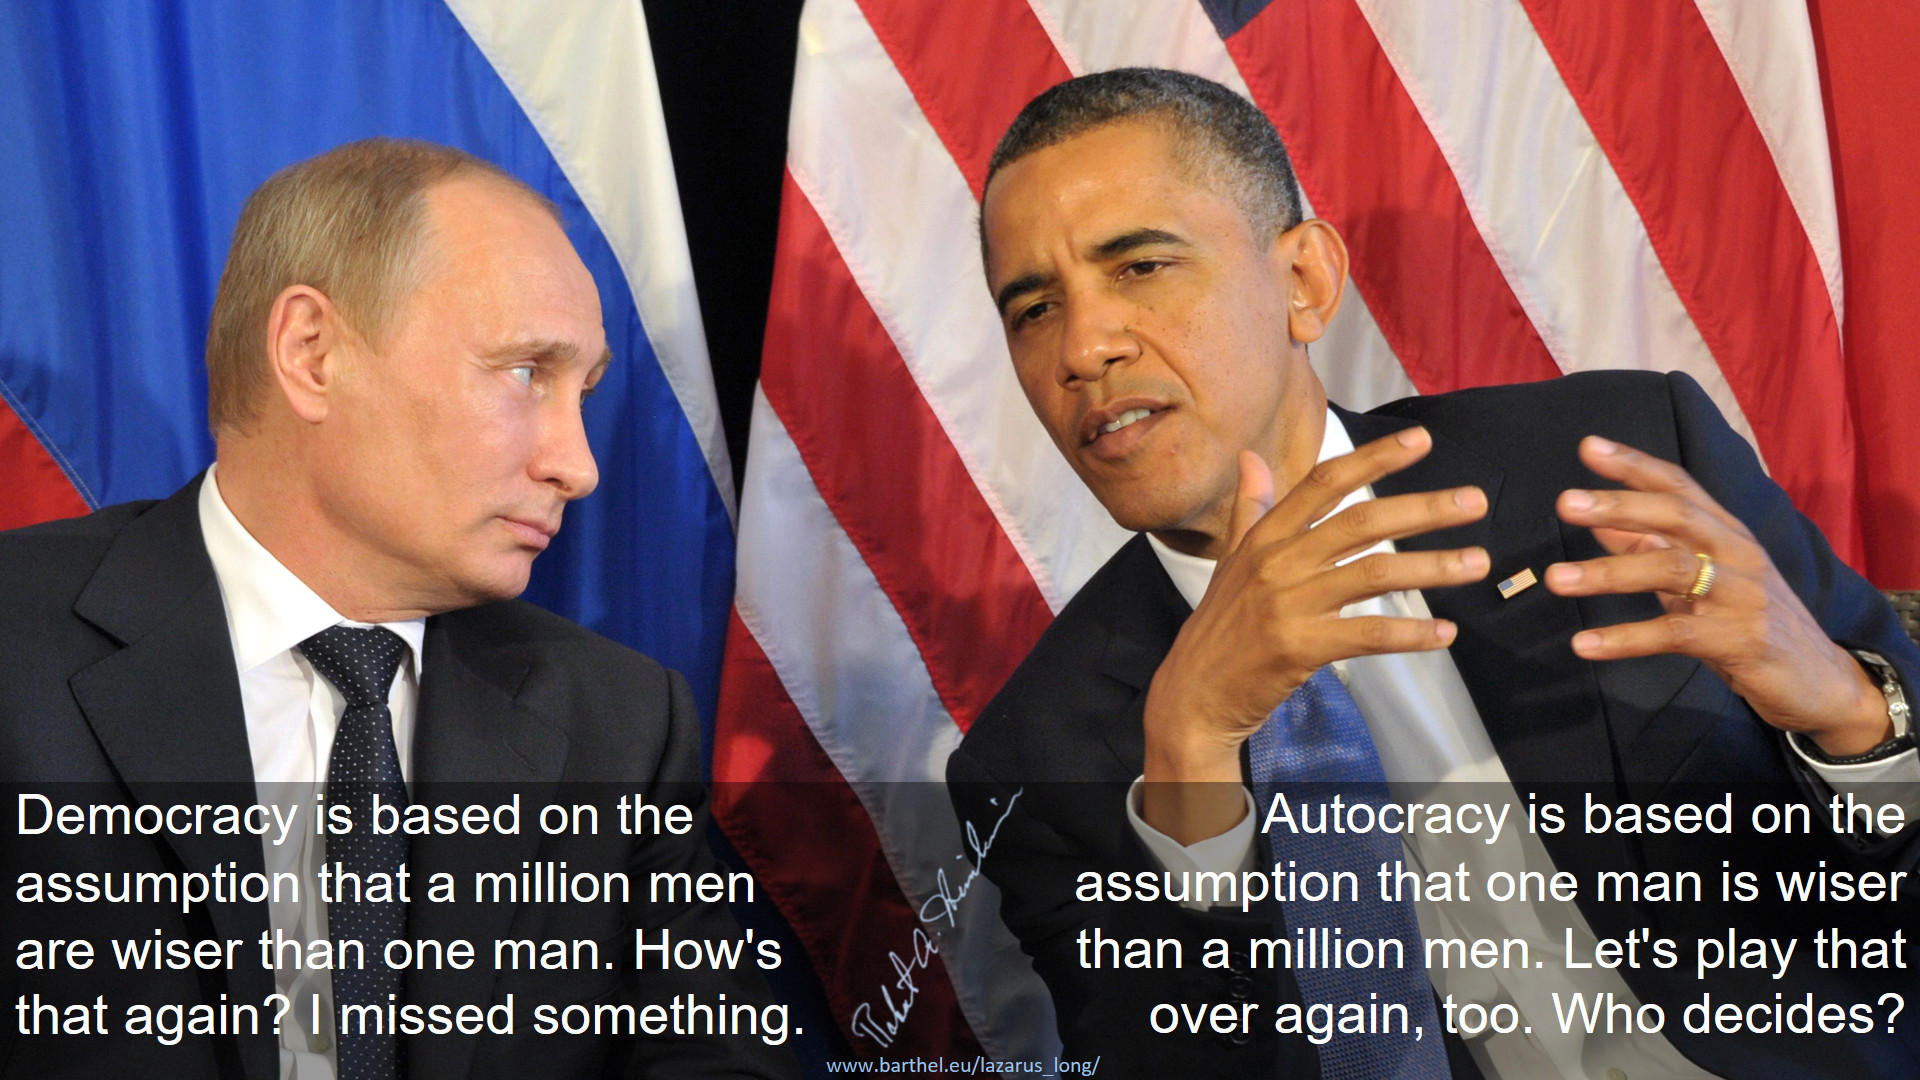 DemocracyAutocracy